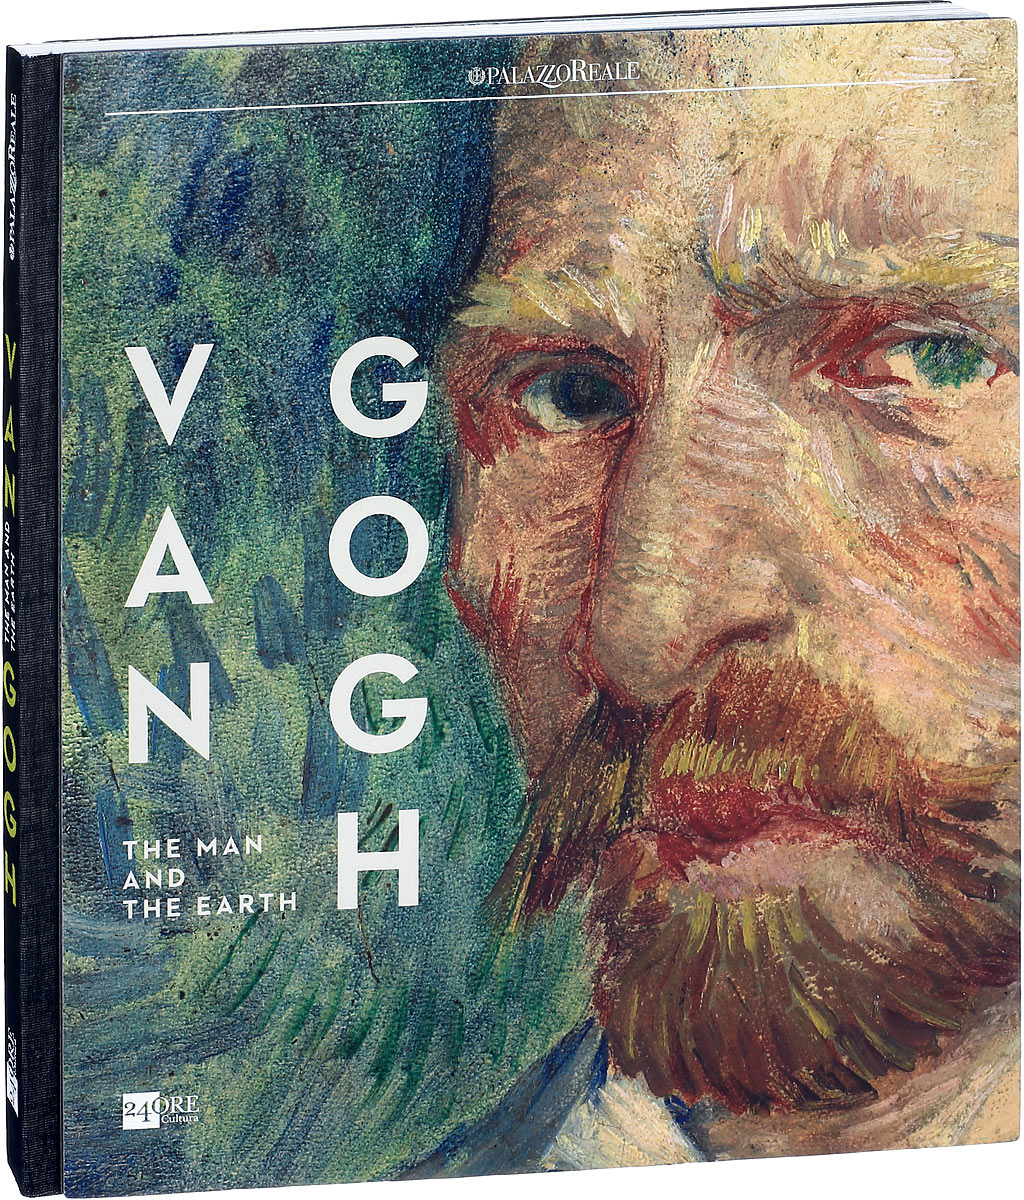 Van Gogh: The Man and the Earth verne j from the earth to the moon and round the moon isbn 9785521057641